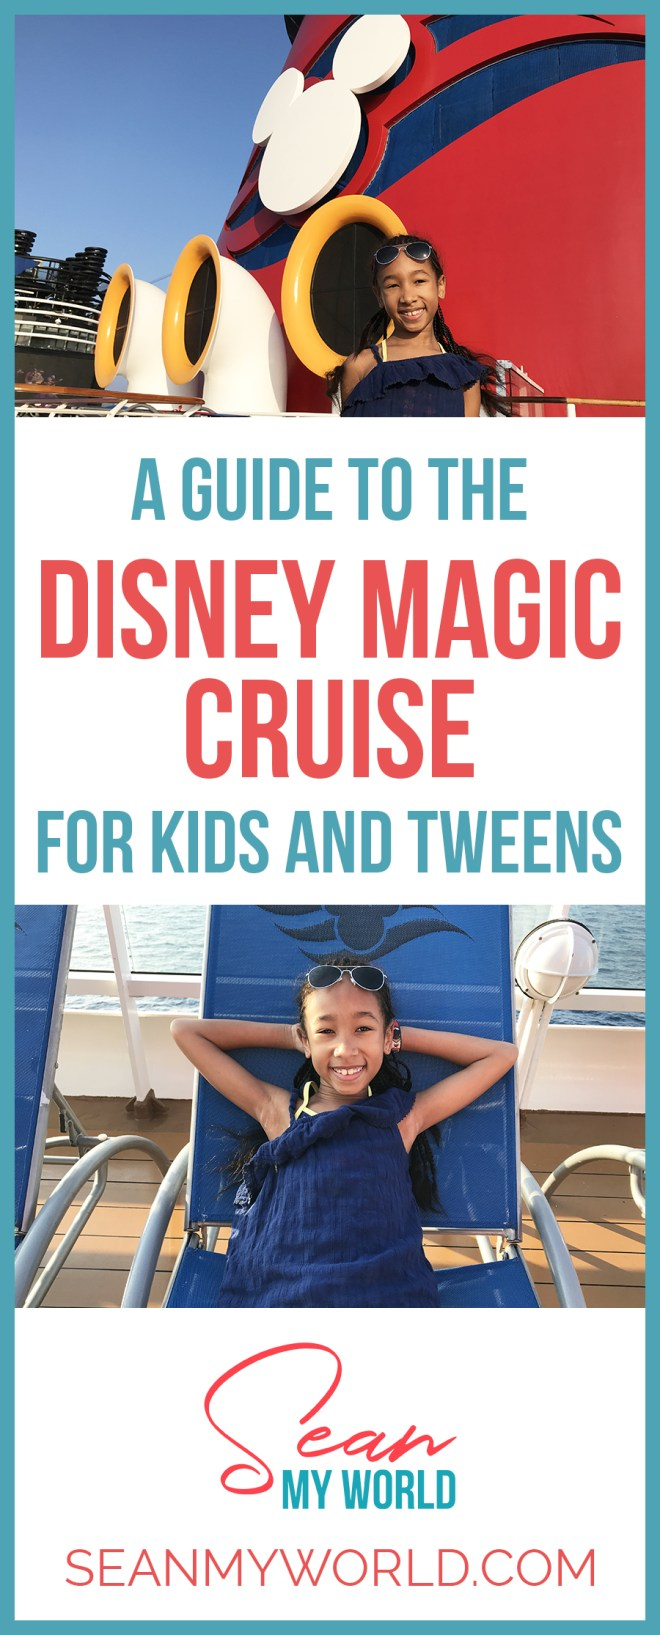 Thinking of going on the Disney Magic cruise ship? Then be sure to check out this Disney Magic review from a kid's perspective!